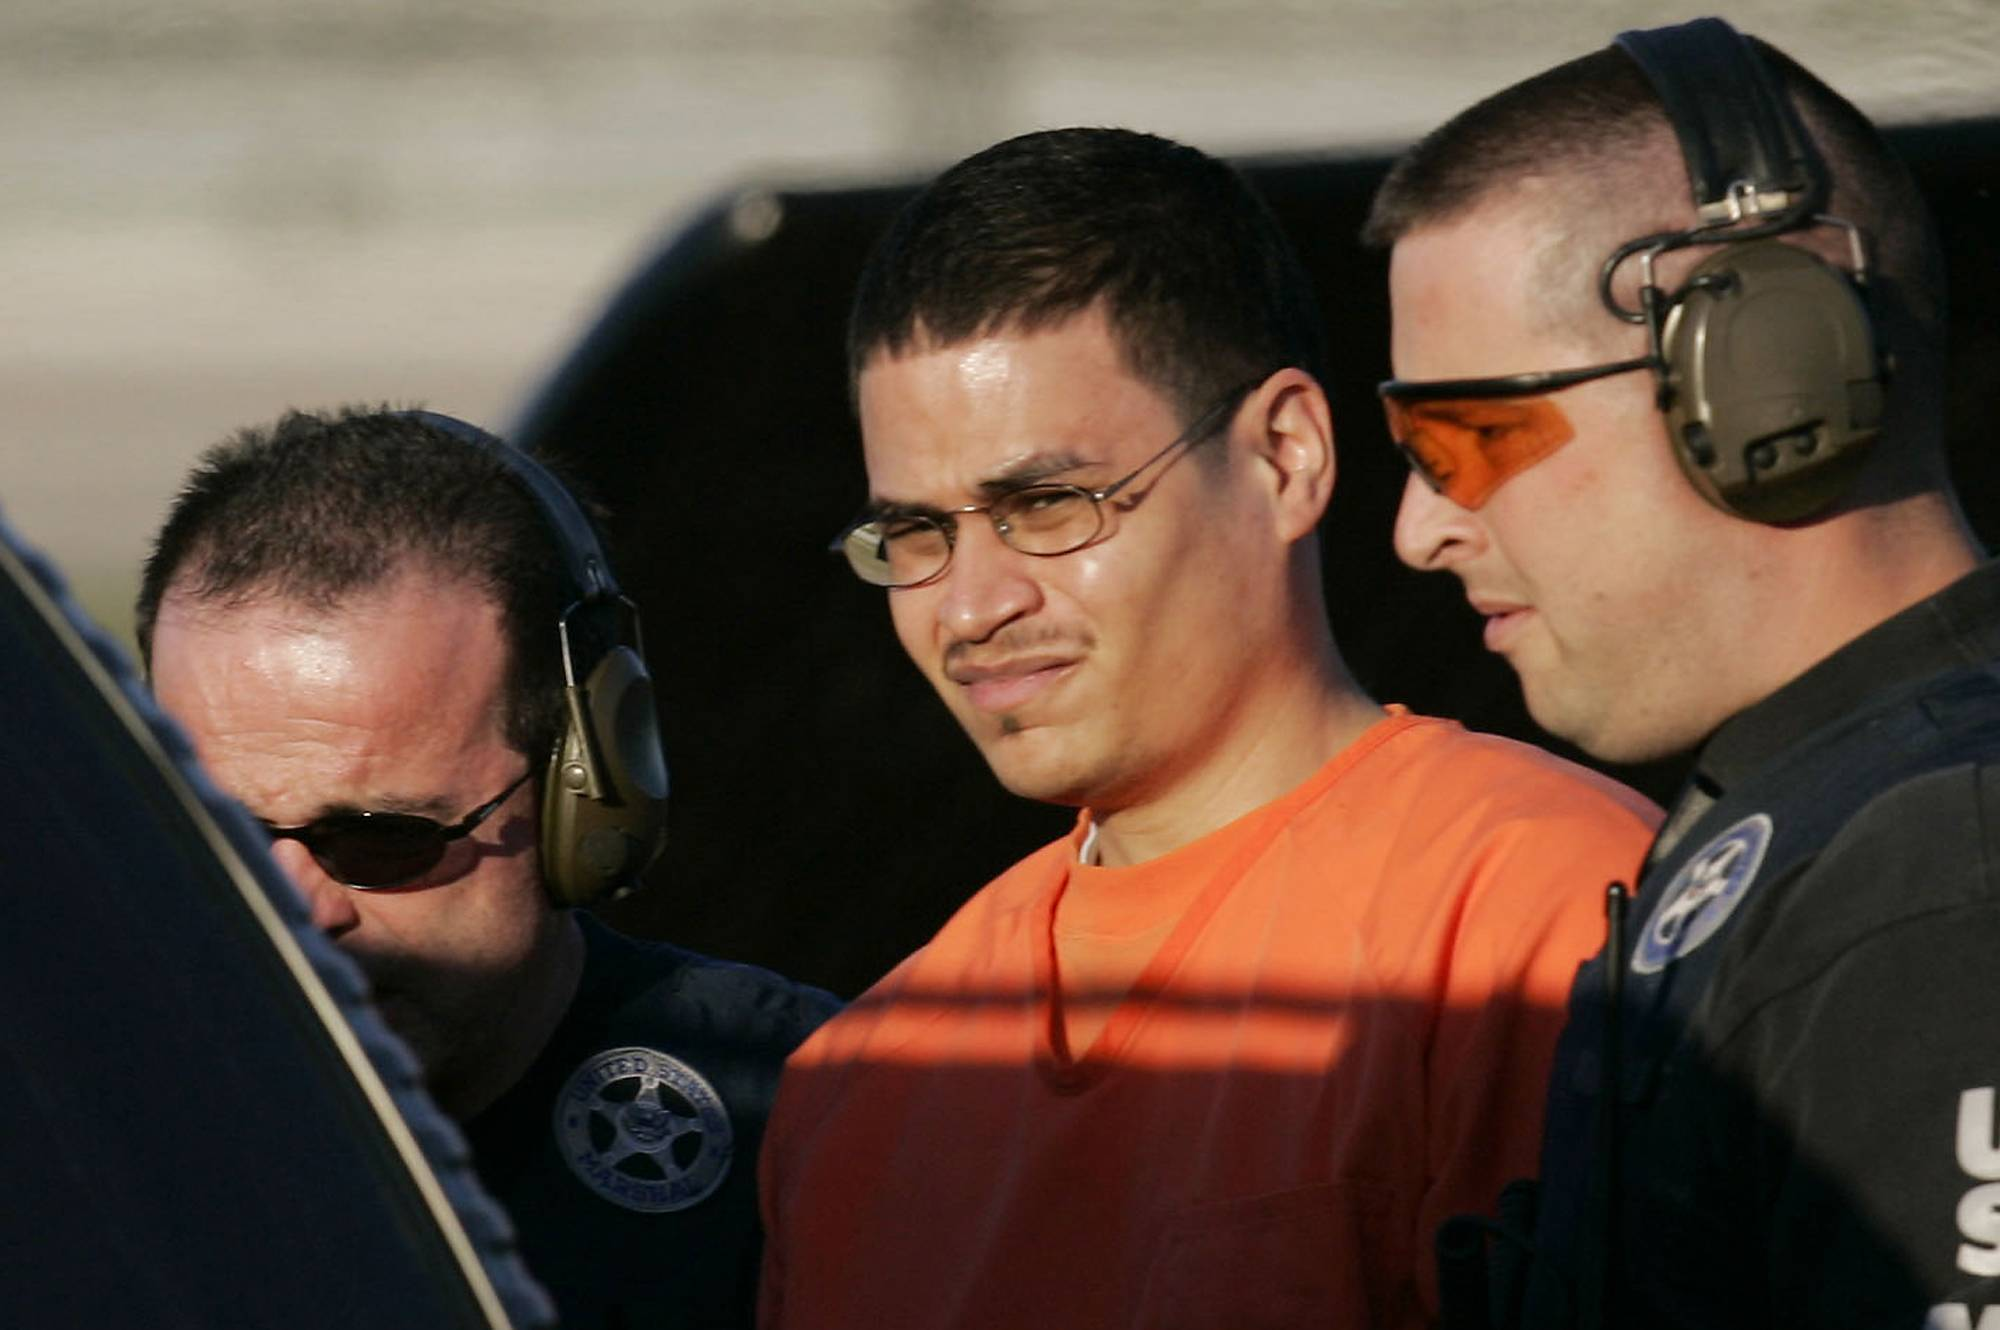 Terror plotter Jose Padilla gets longer sentence of 21 years